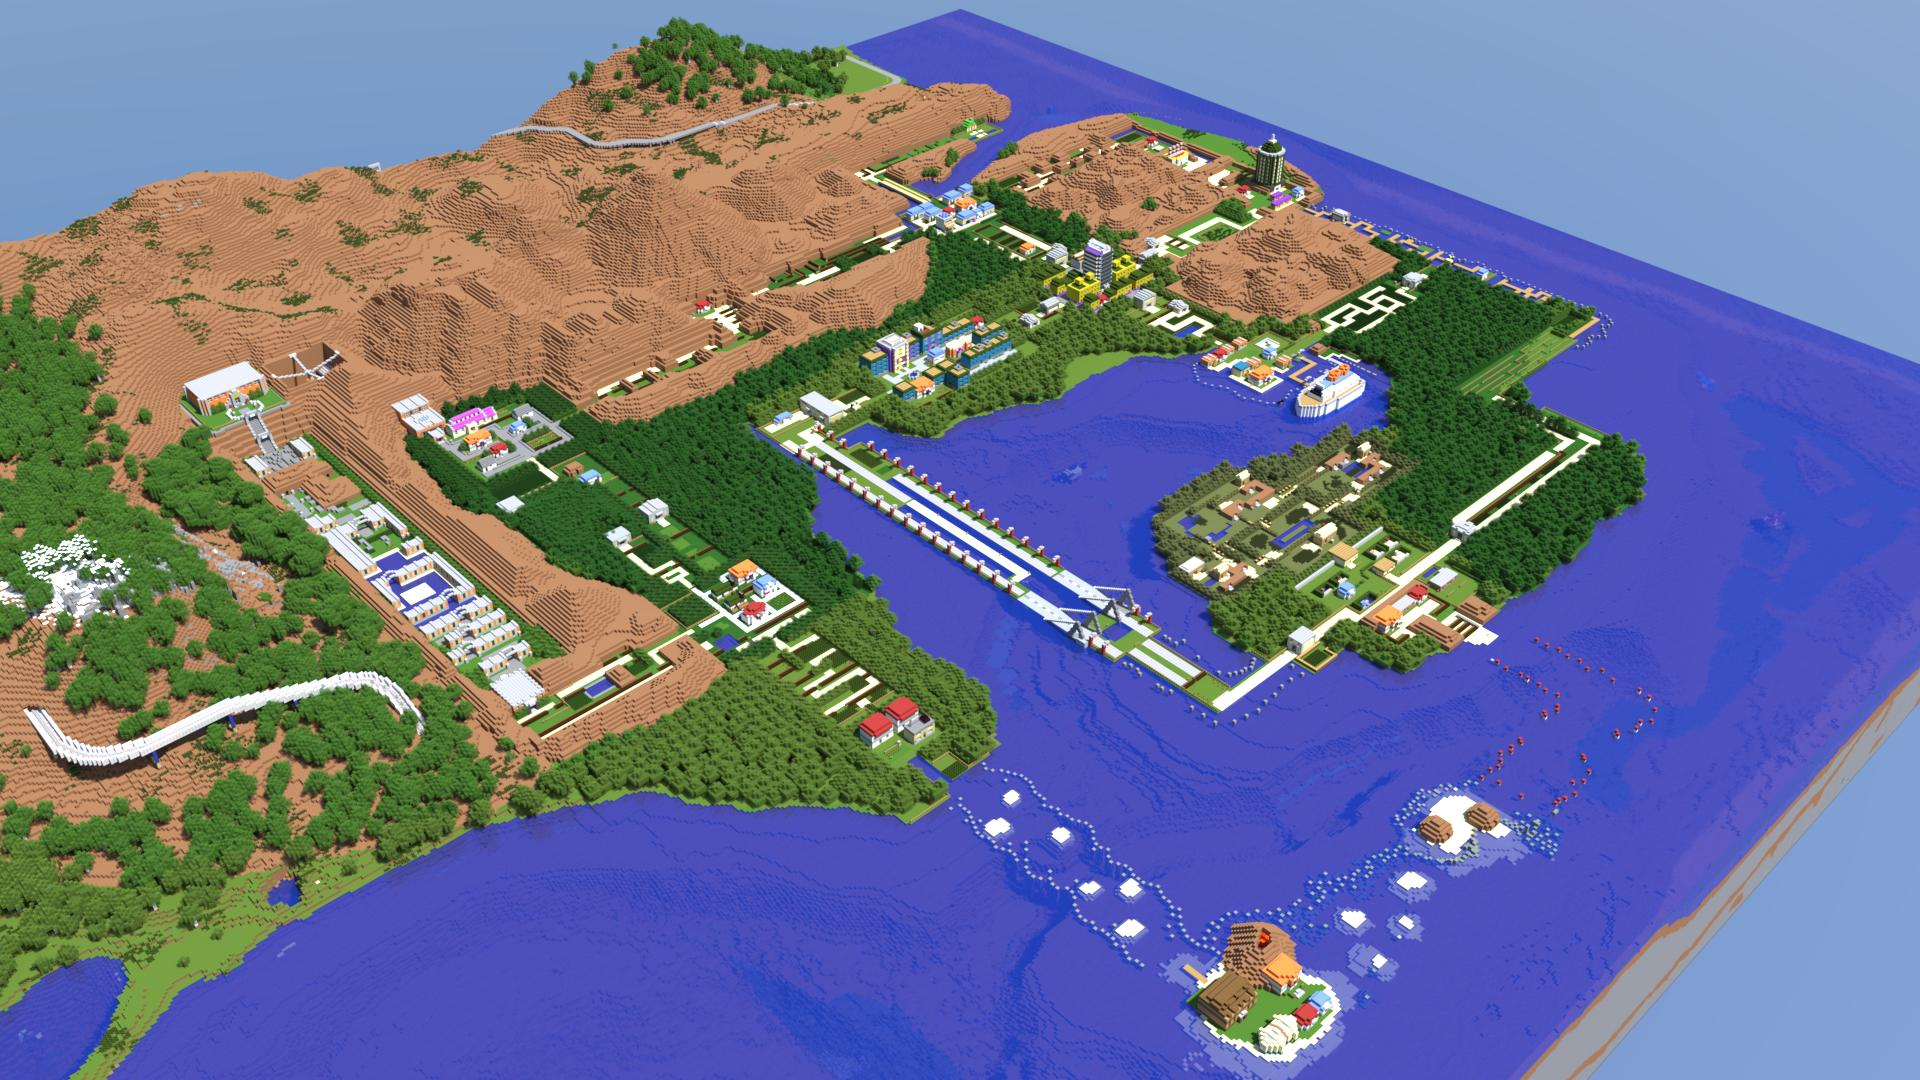 Full Scale Recreation of the Kanto Region from Pokemon